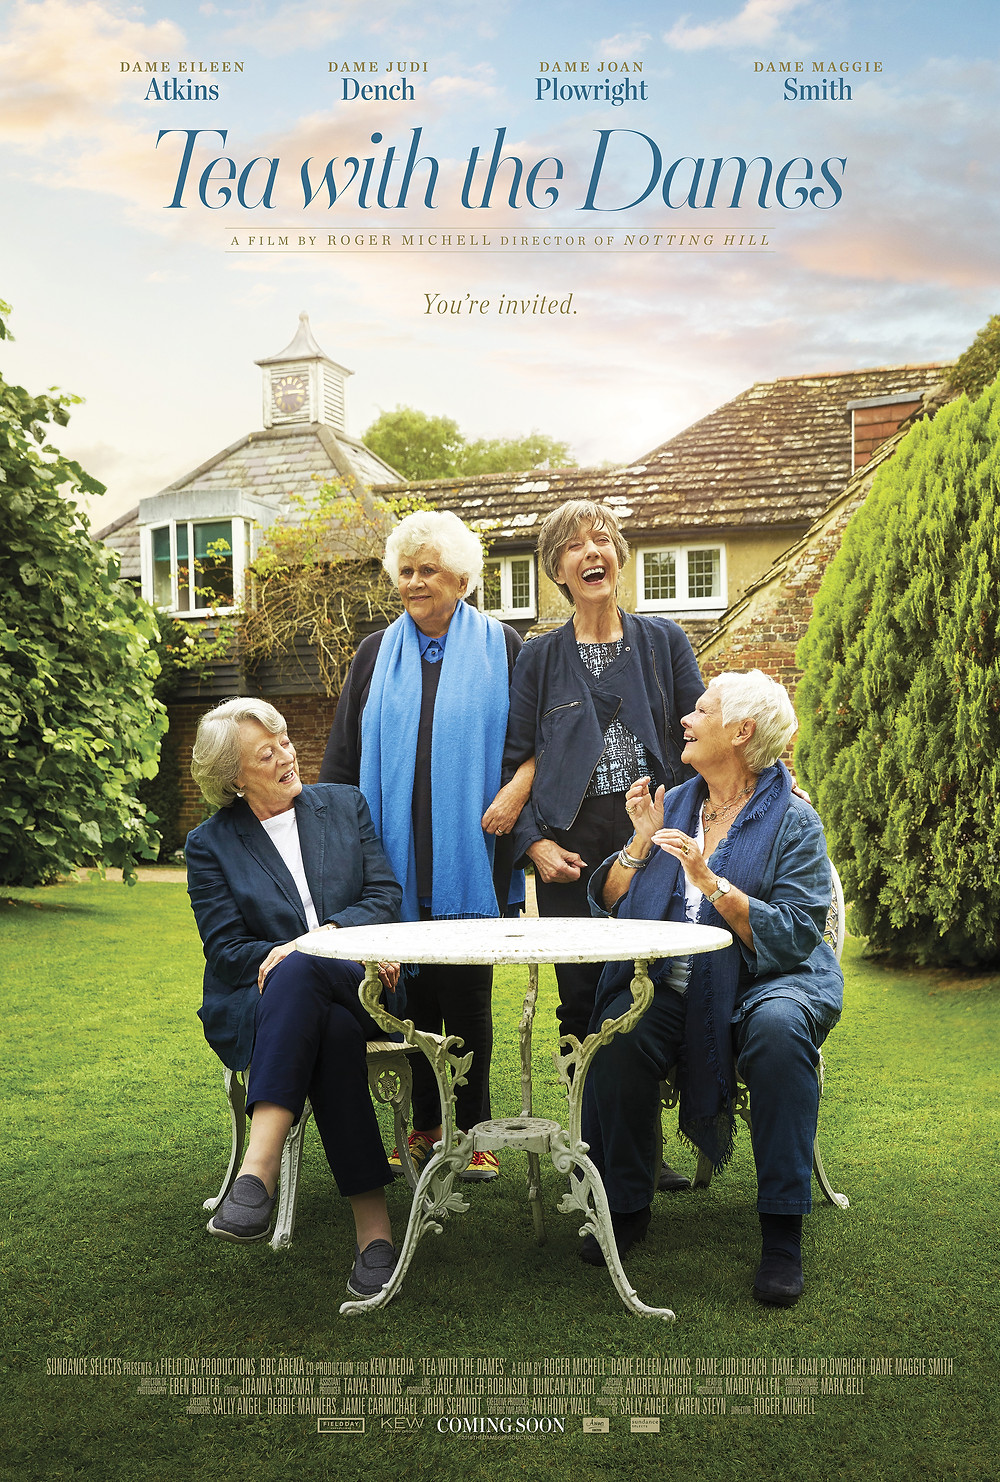 DVD cover of Tea with the Dames